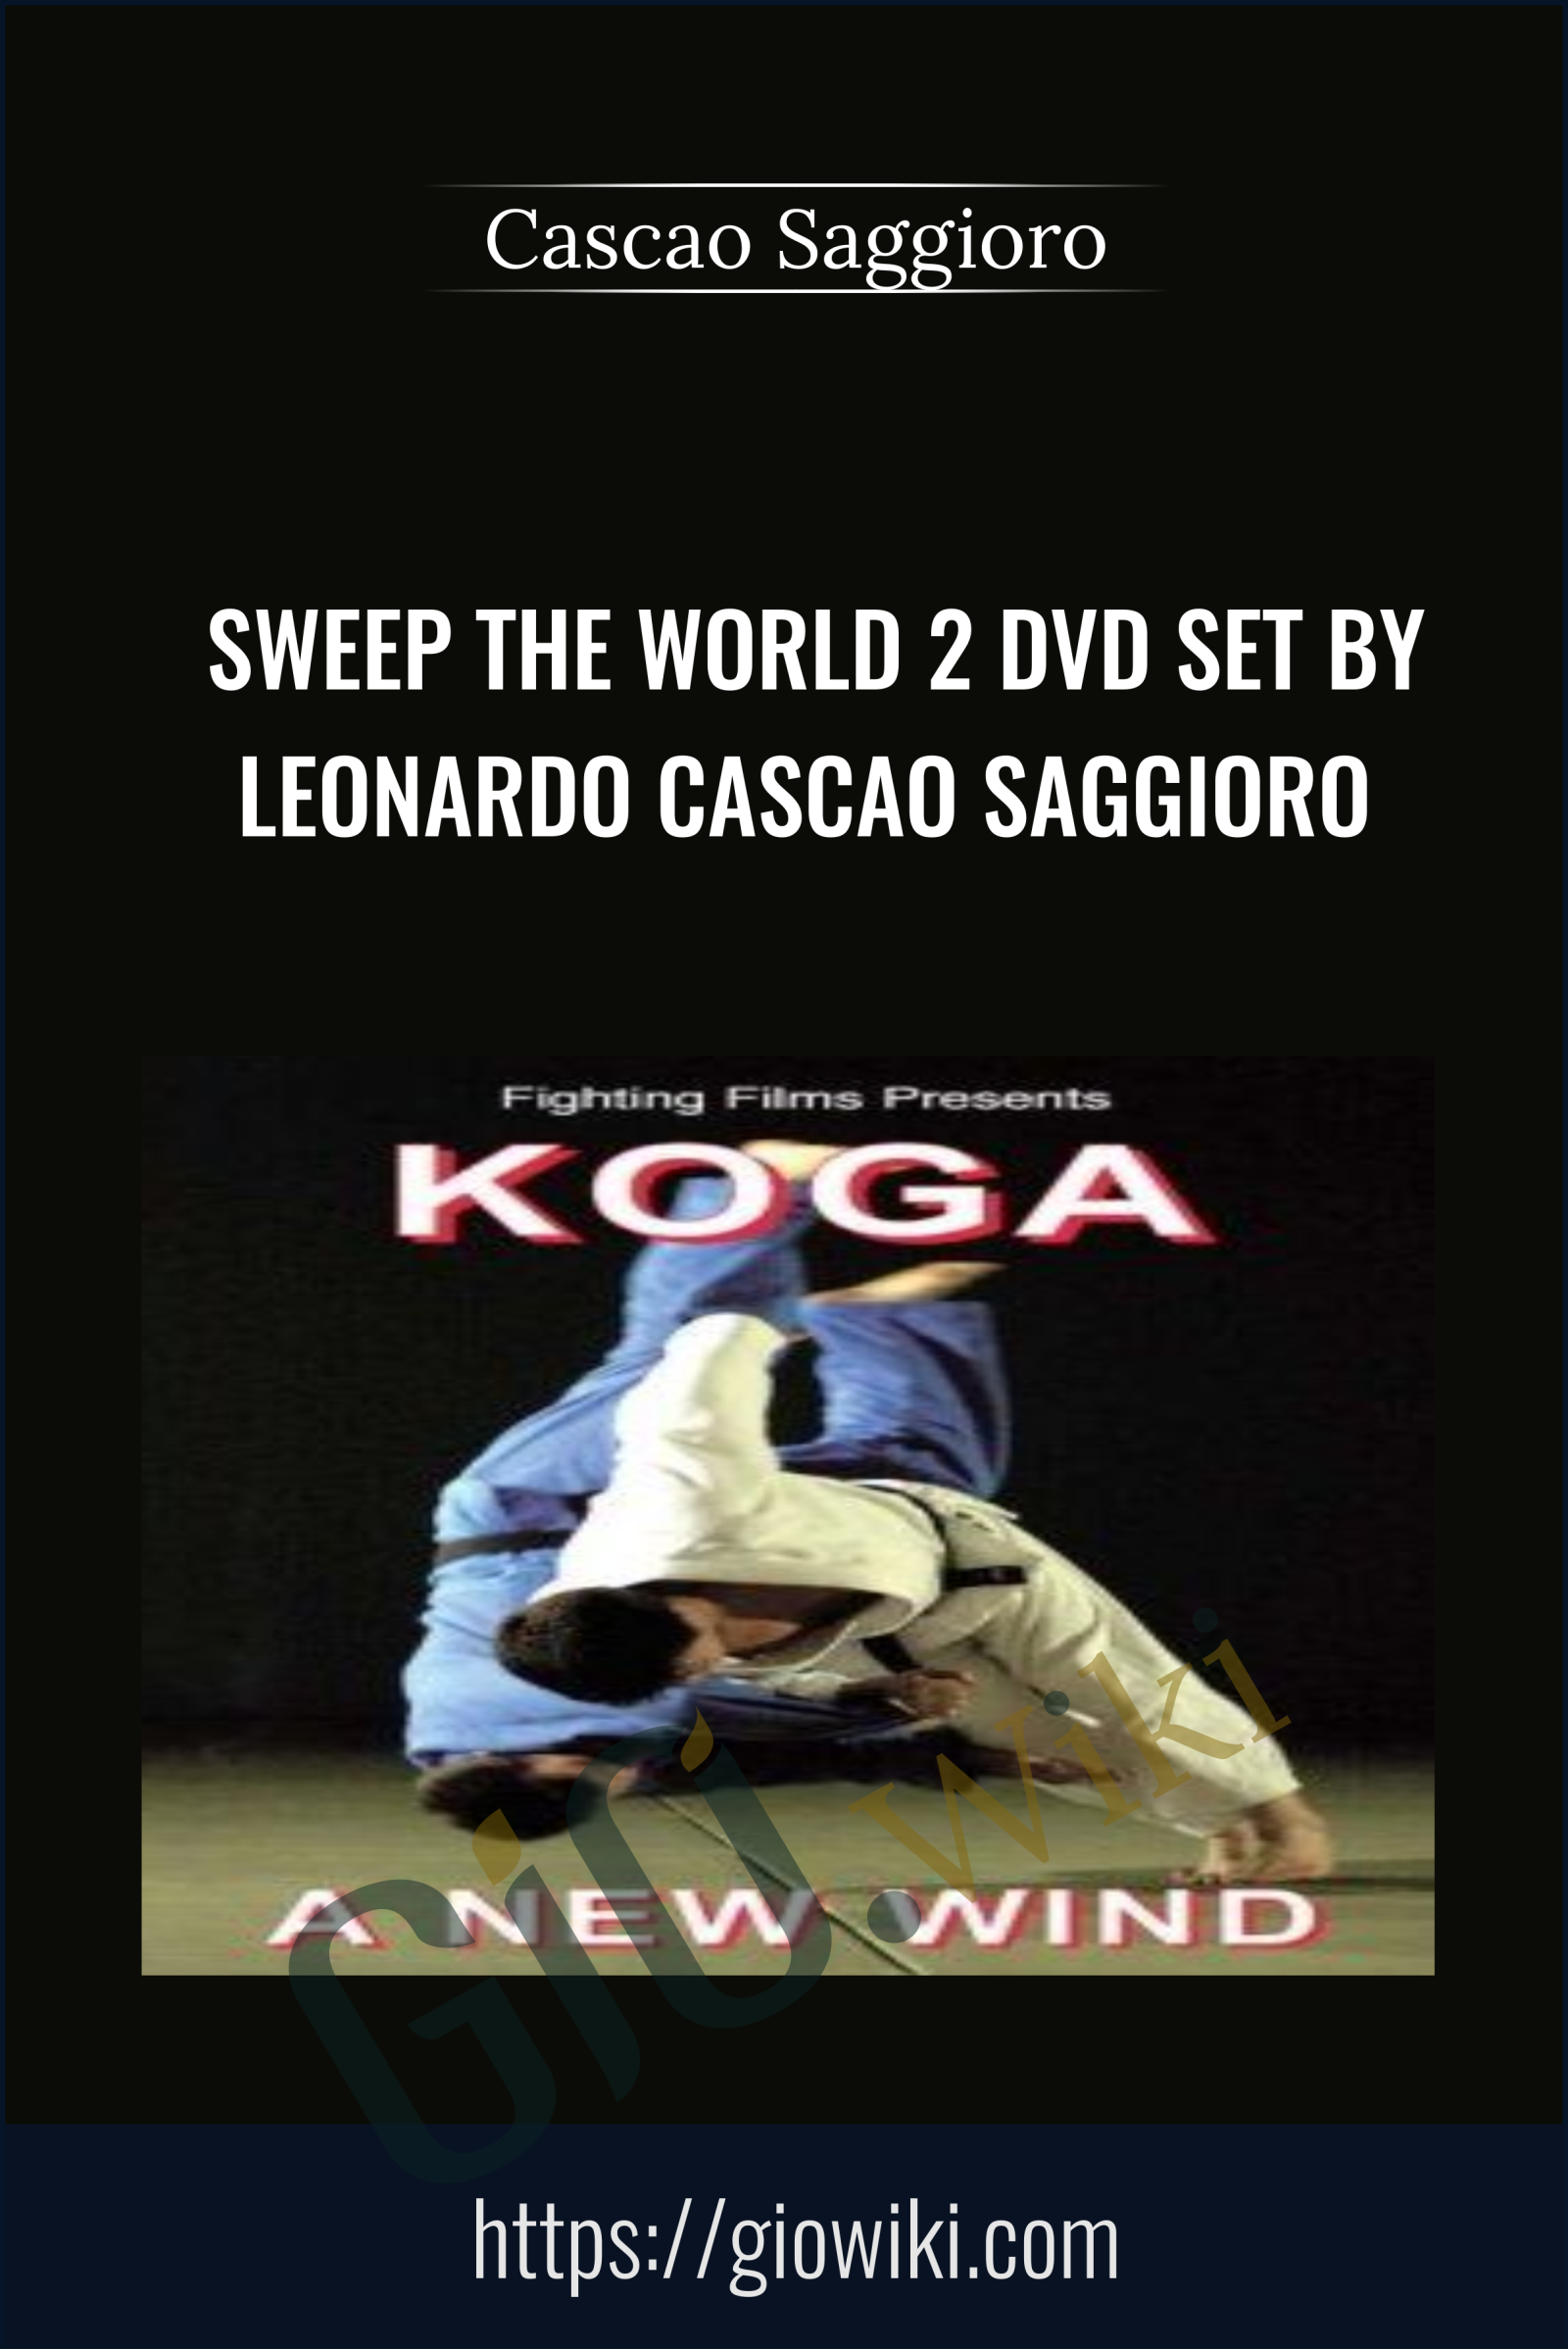 Sweep The World 2 Dvd Set - Leonardo Cascao Saggioro